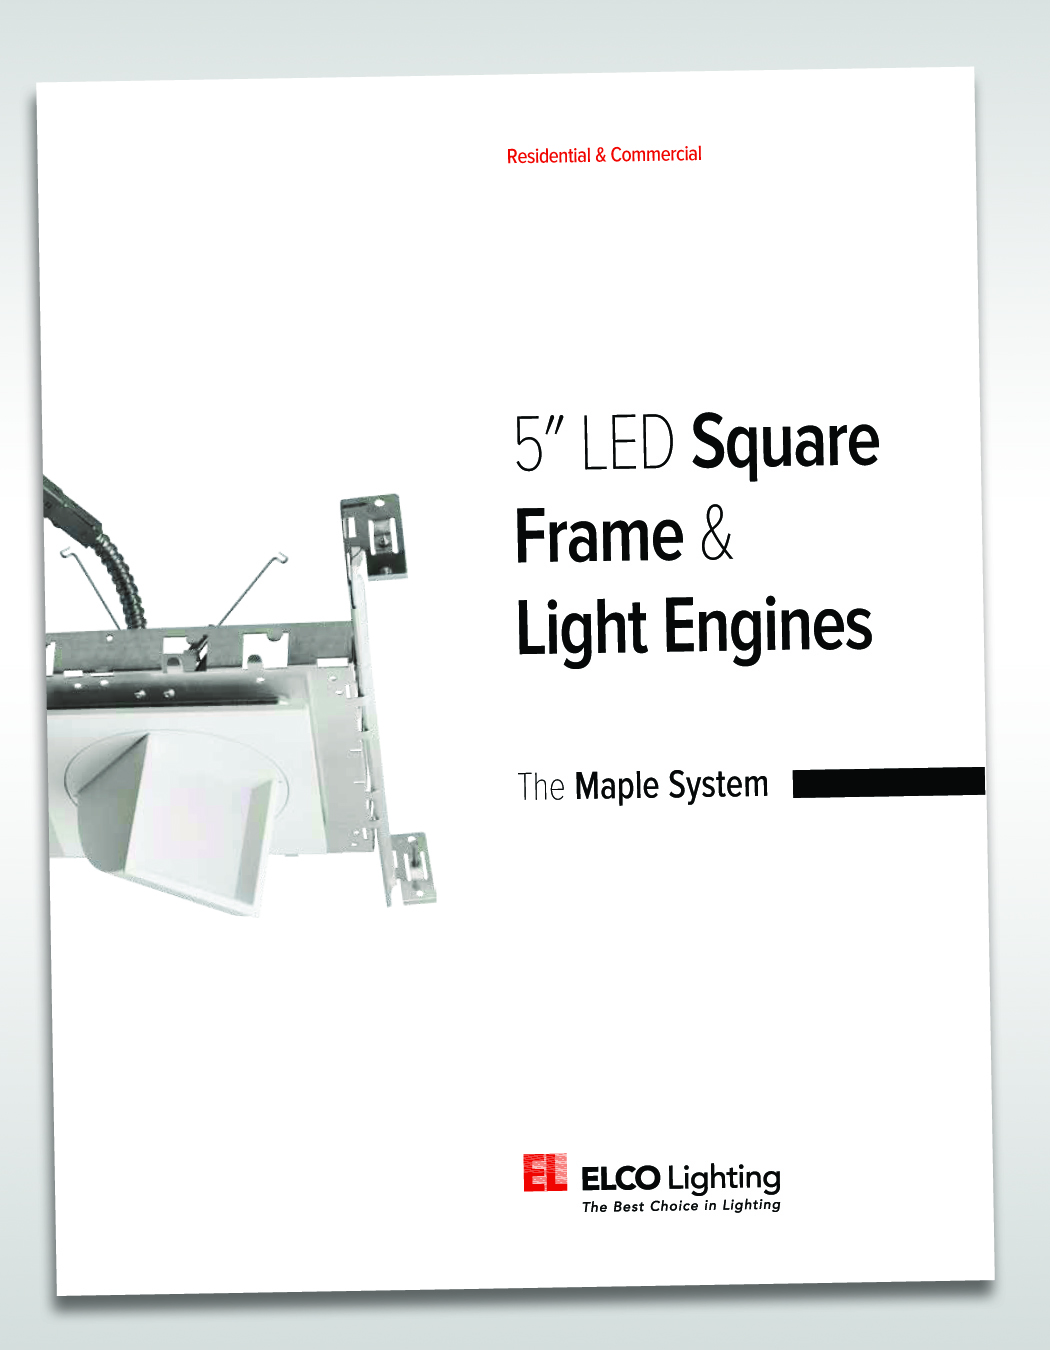 Elco announces super shallow 5 square led fixtures elco lighting the maple system 5 led square frames and light engines cat1038 elco lighting arubaitofo Gallery